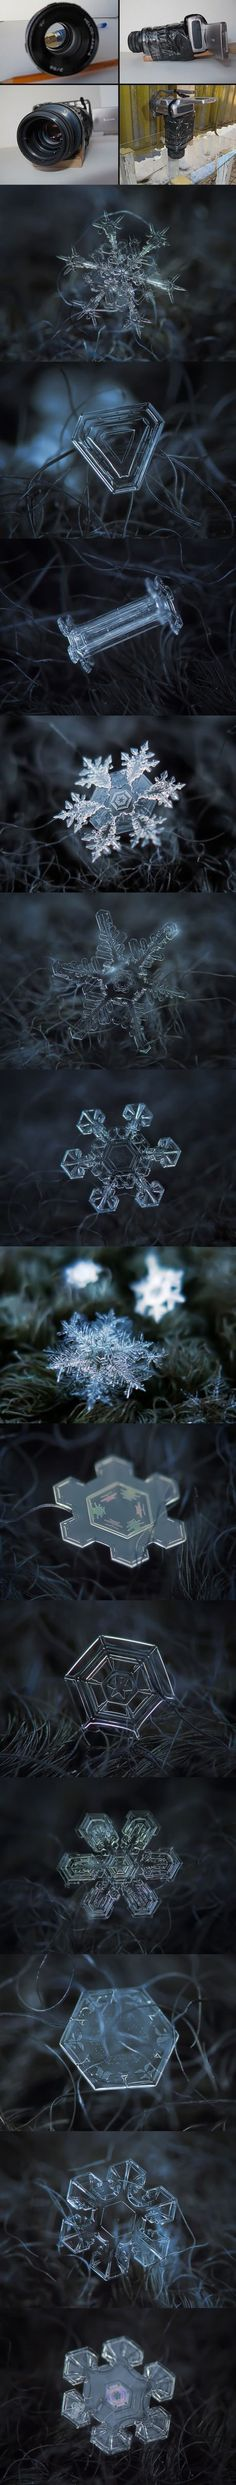 Russian photographer Alexey Kljatov used this cheap home-made camera rig to to take close-ups of snowflakes